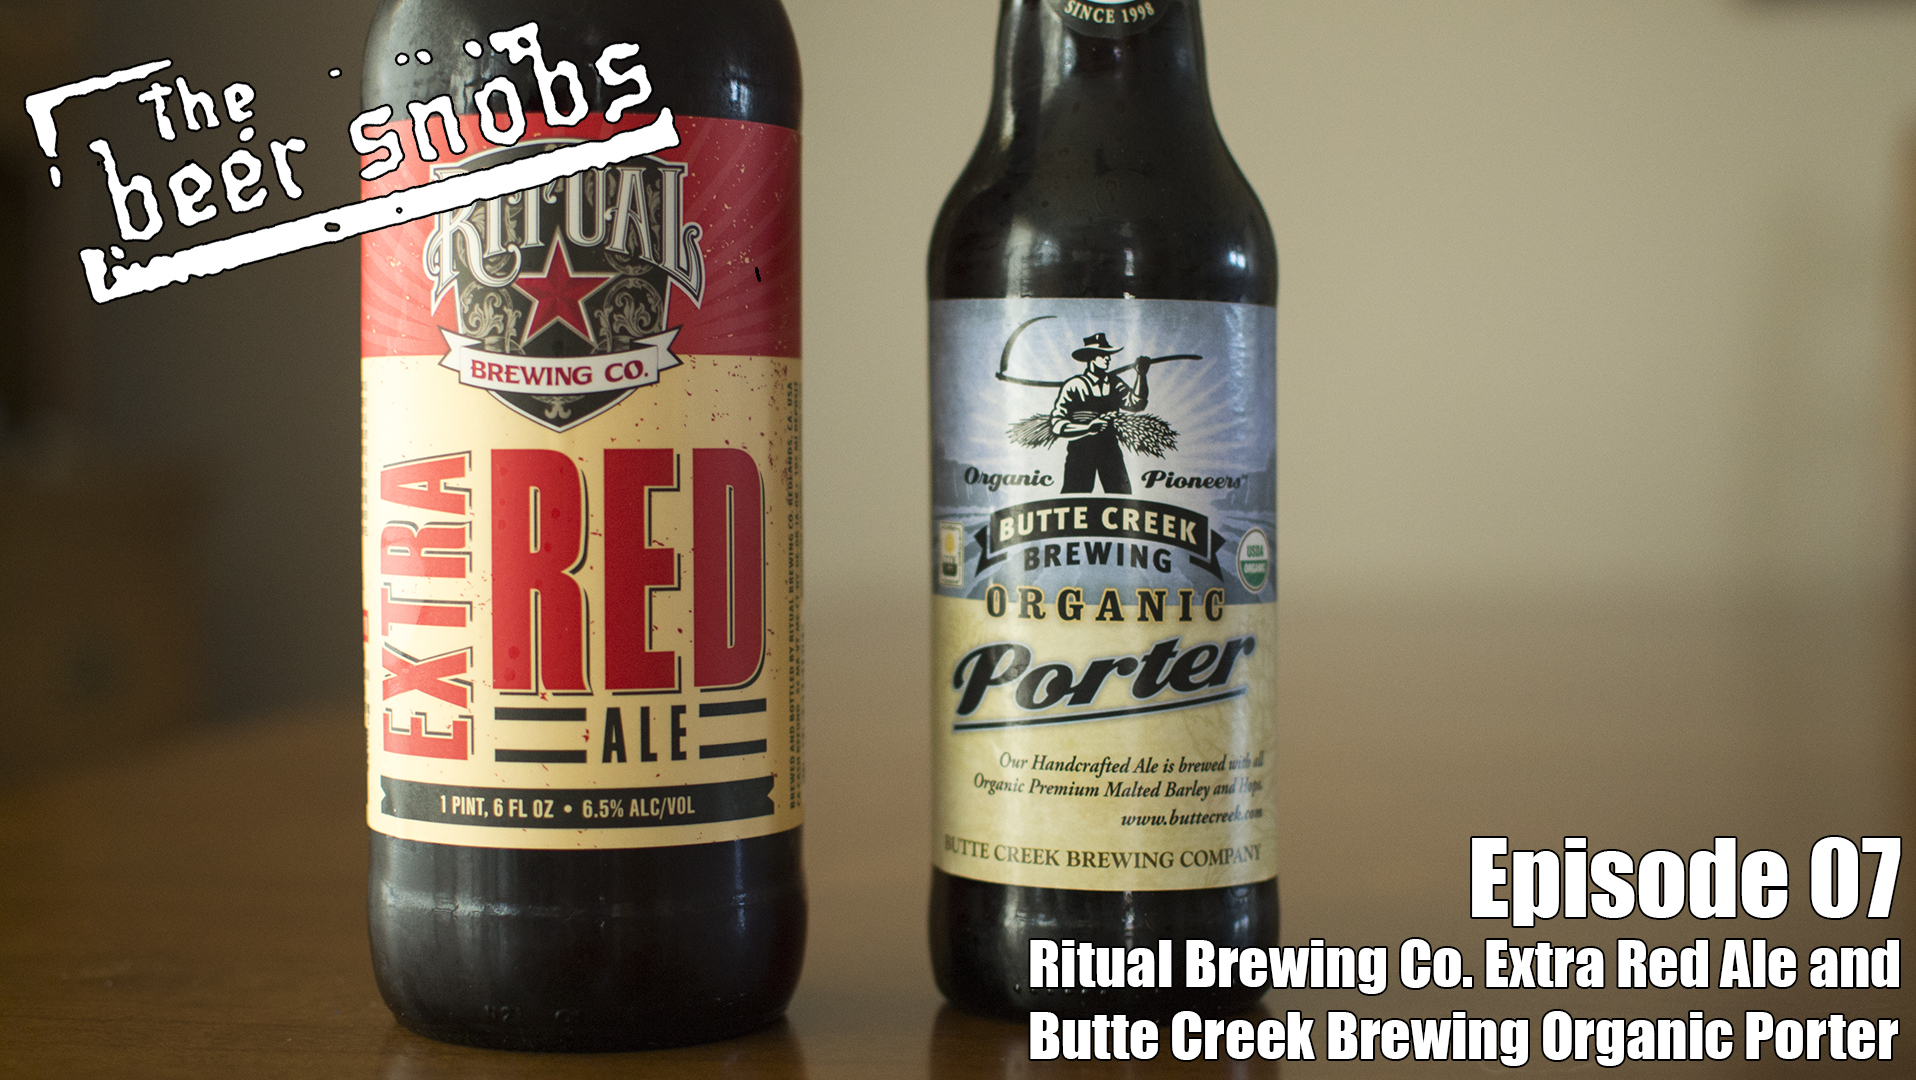 Episode 07 - Ritual Brewing Co. Extra Red Ale and Butte Creek Brewing Organic Porter